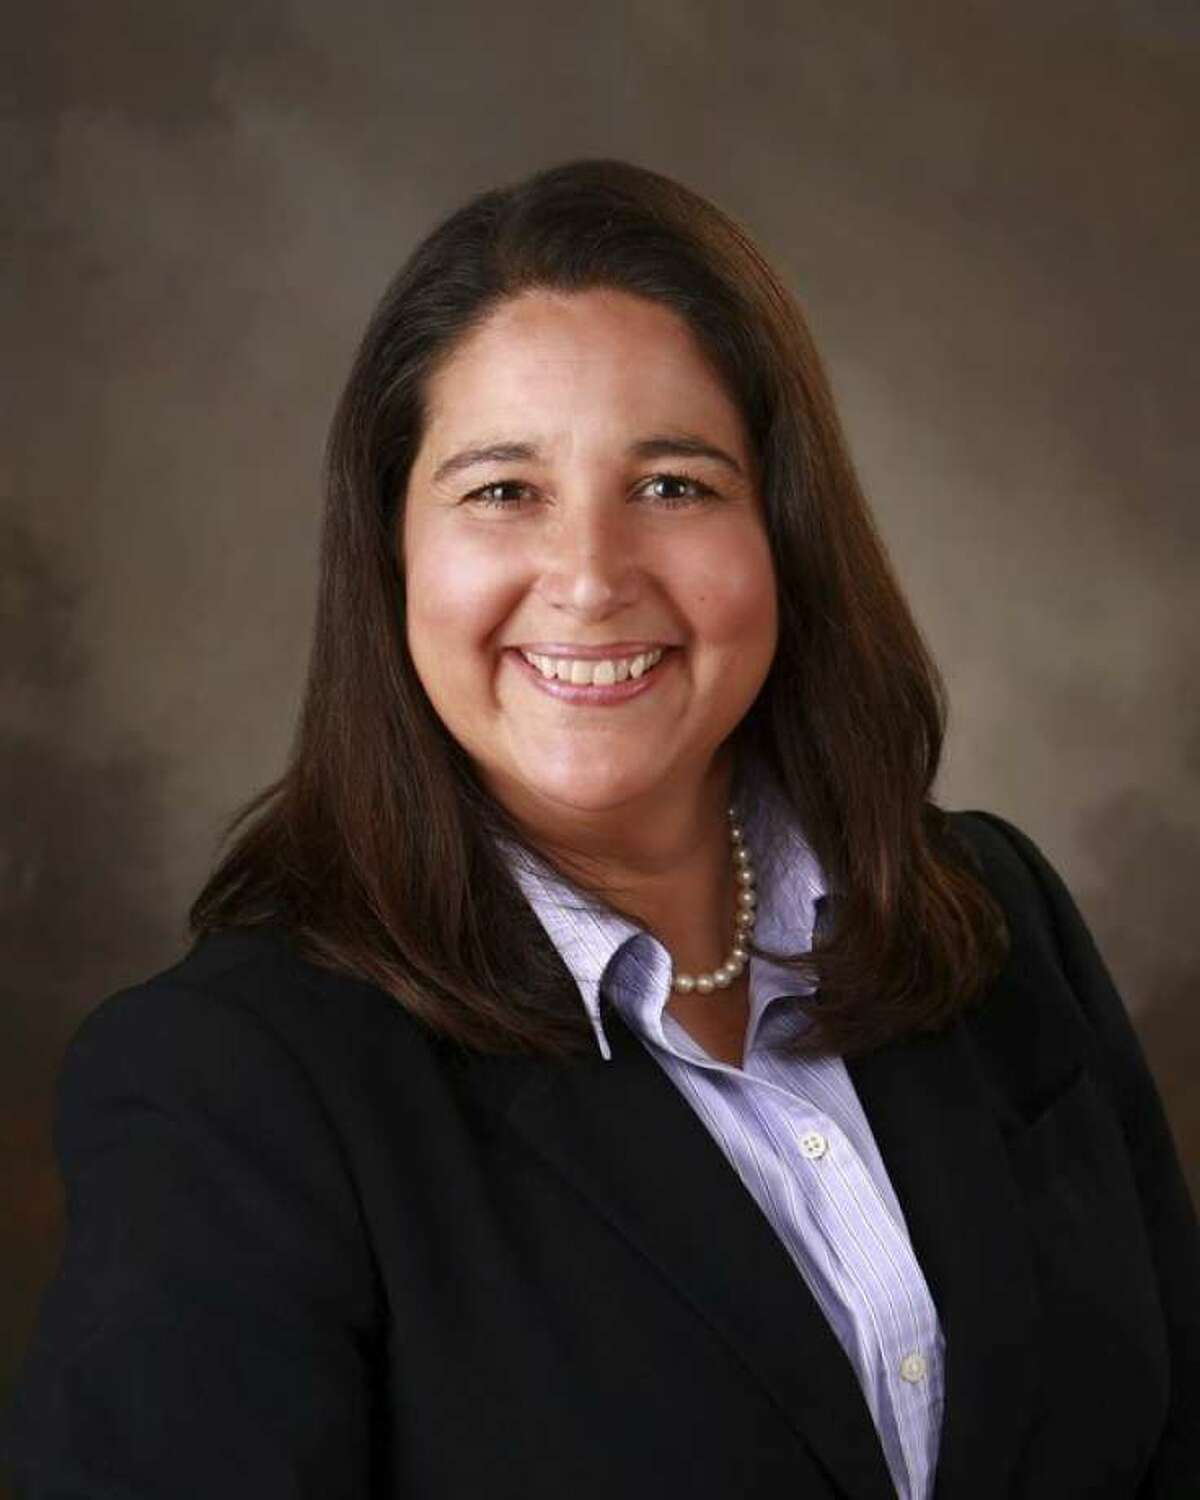 Mount Pleasant Attorney Kristen Brown won the Democratic primary for the 99th District State House.